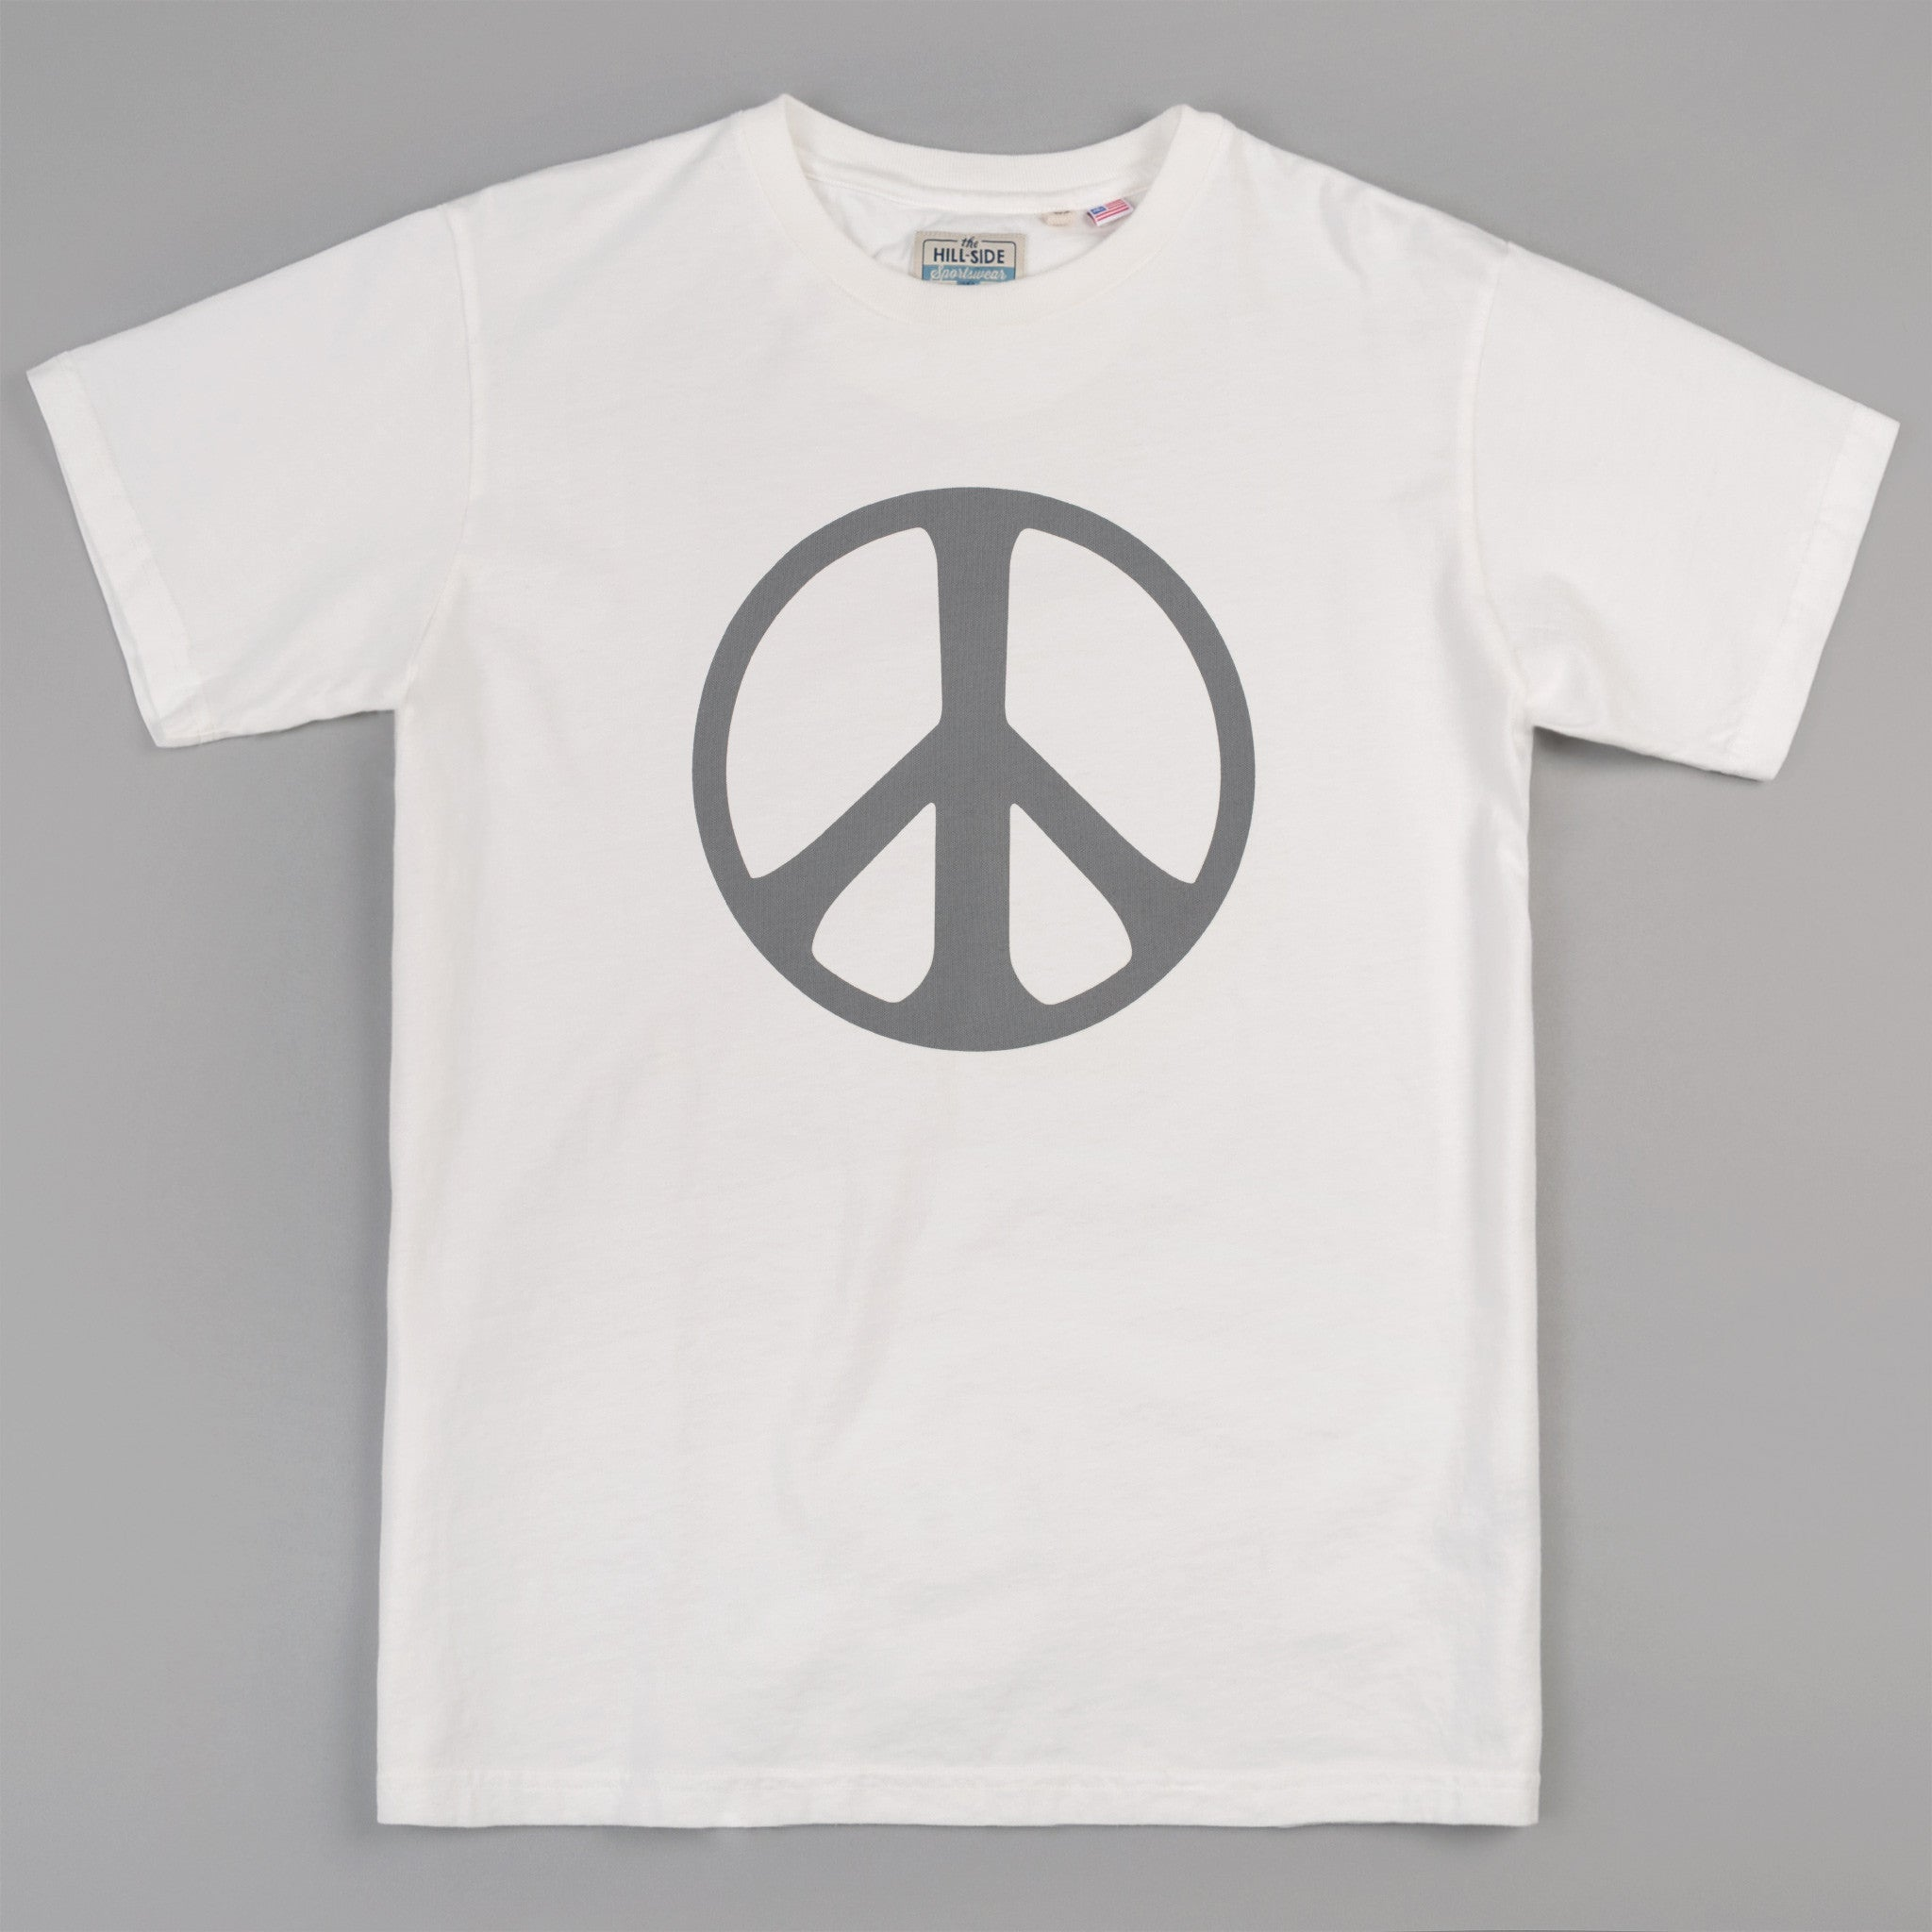 The Hill-Side - T-Shirt, Peace Sign, Natural White w/ 3M Reflective Print - TS1-1101